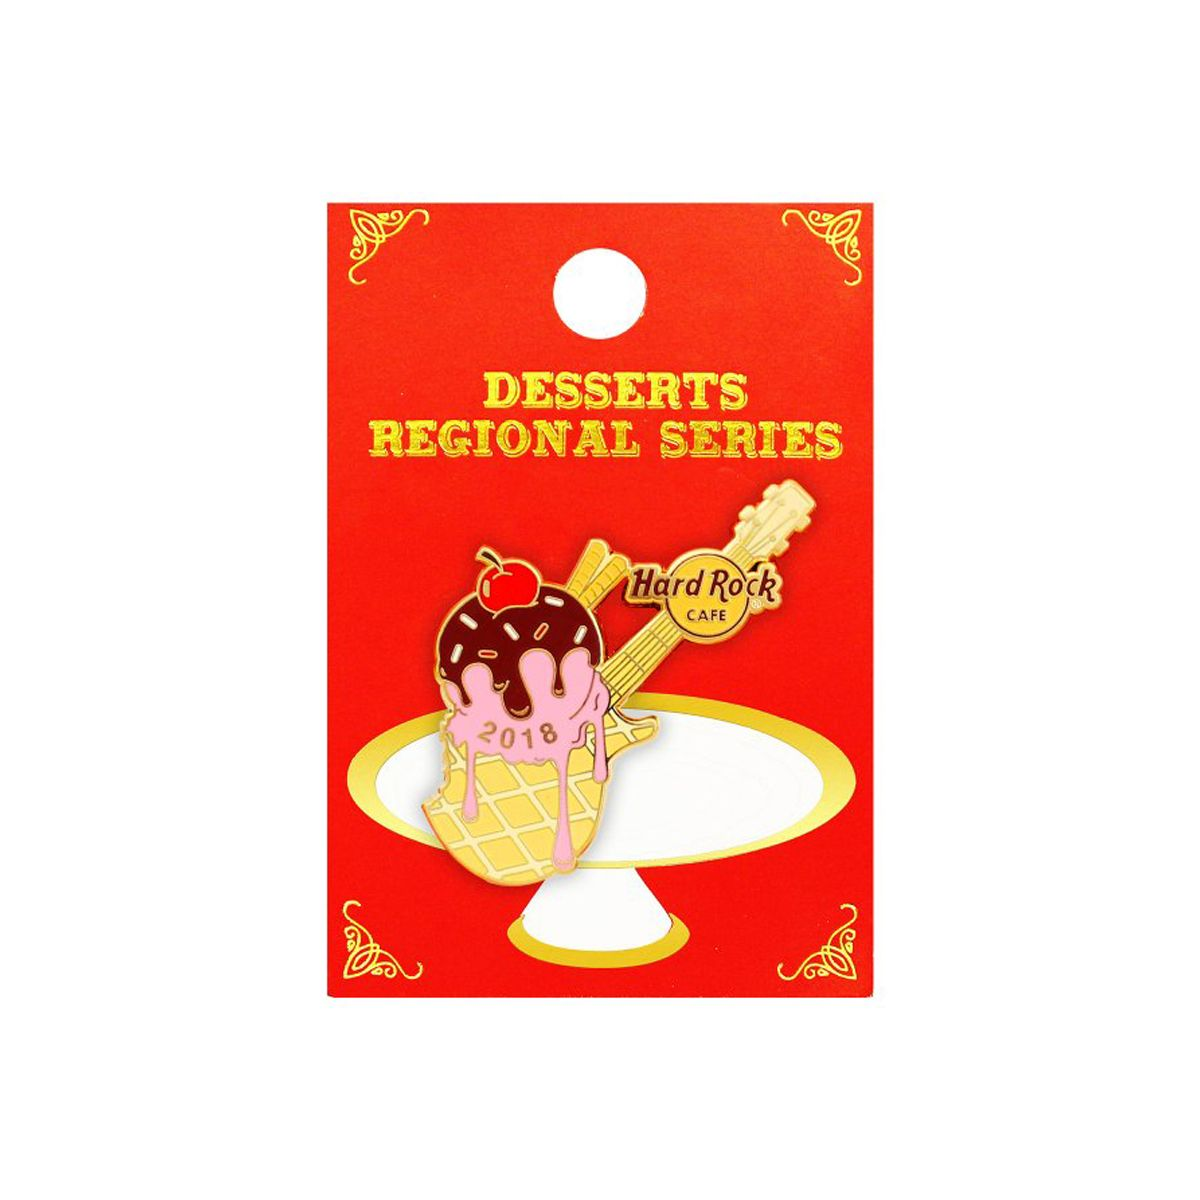 Famous Desserts Series Pin 2018